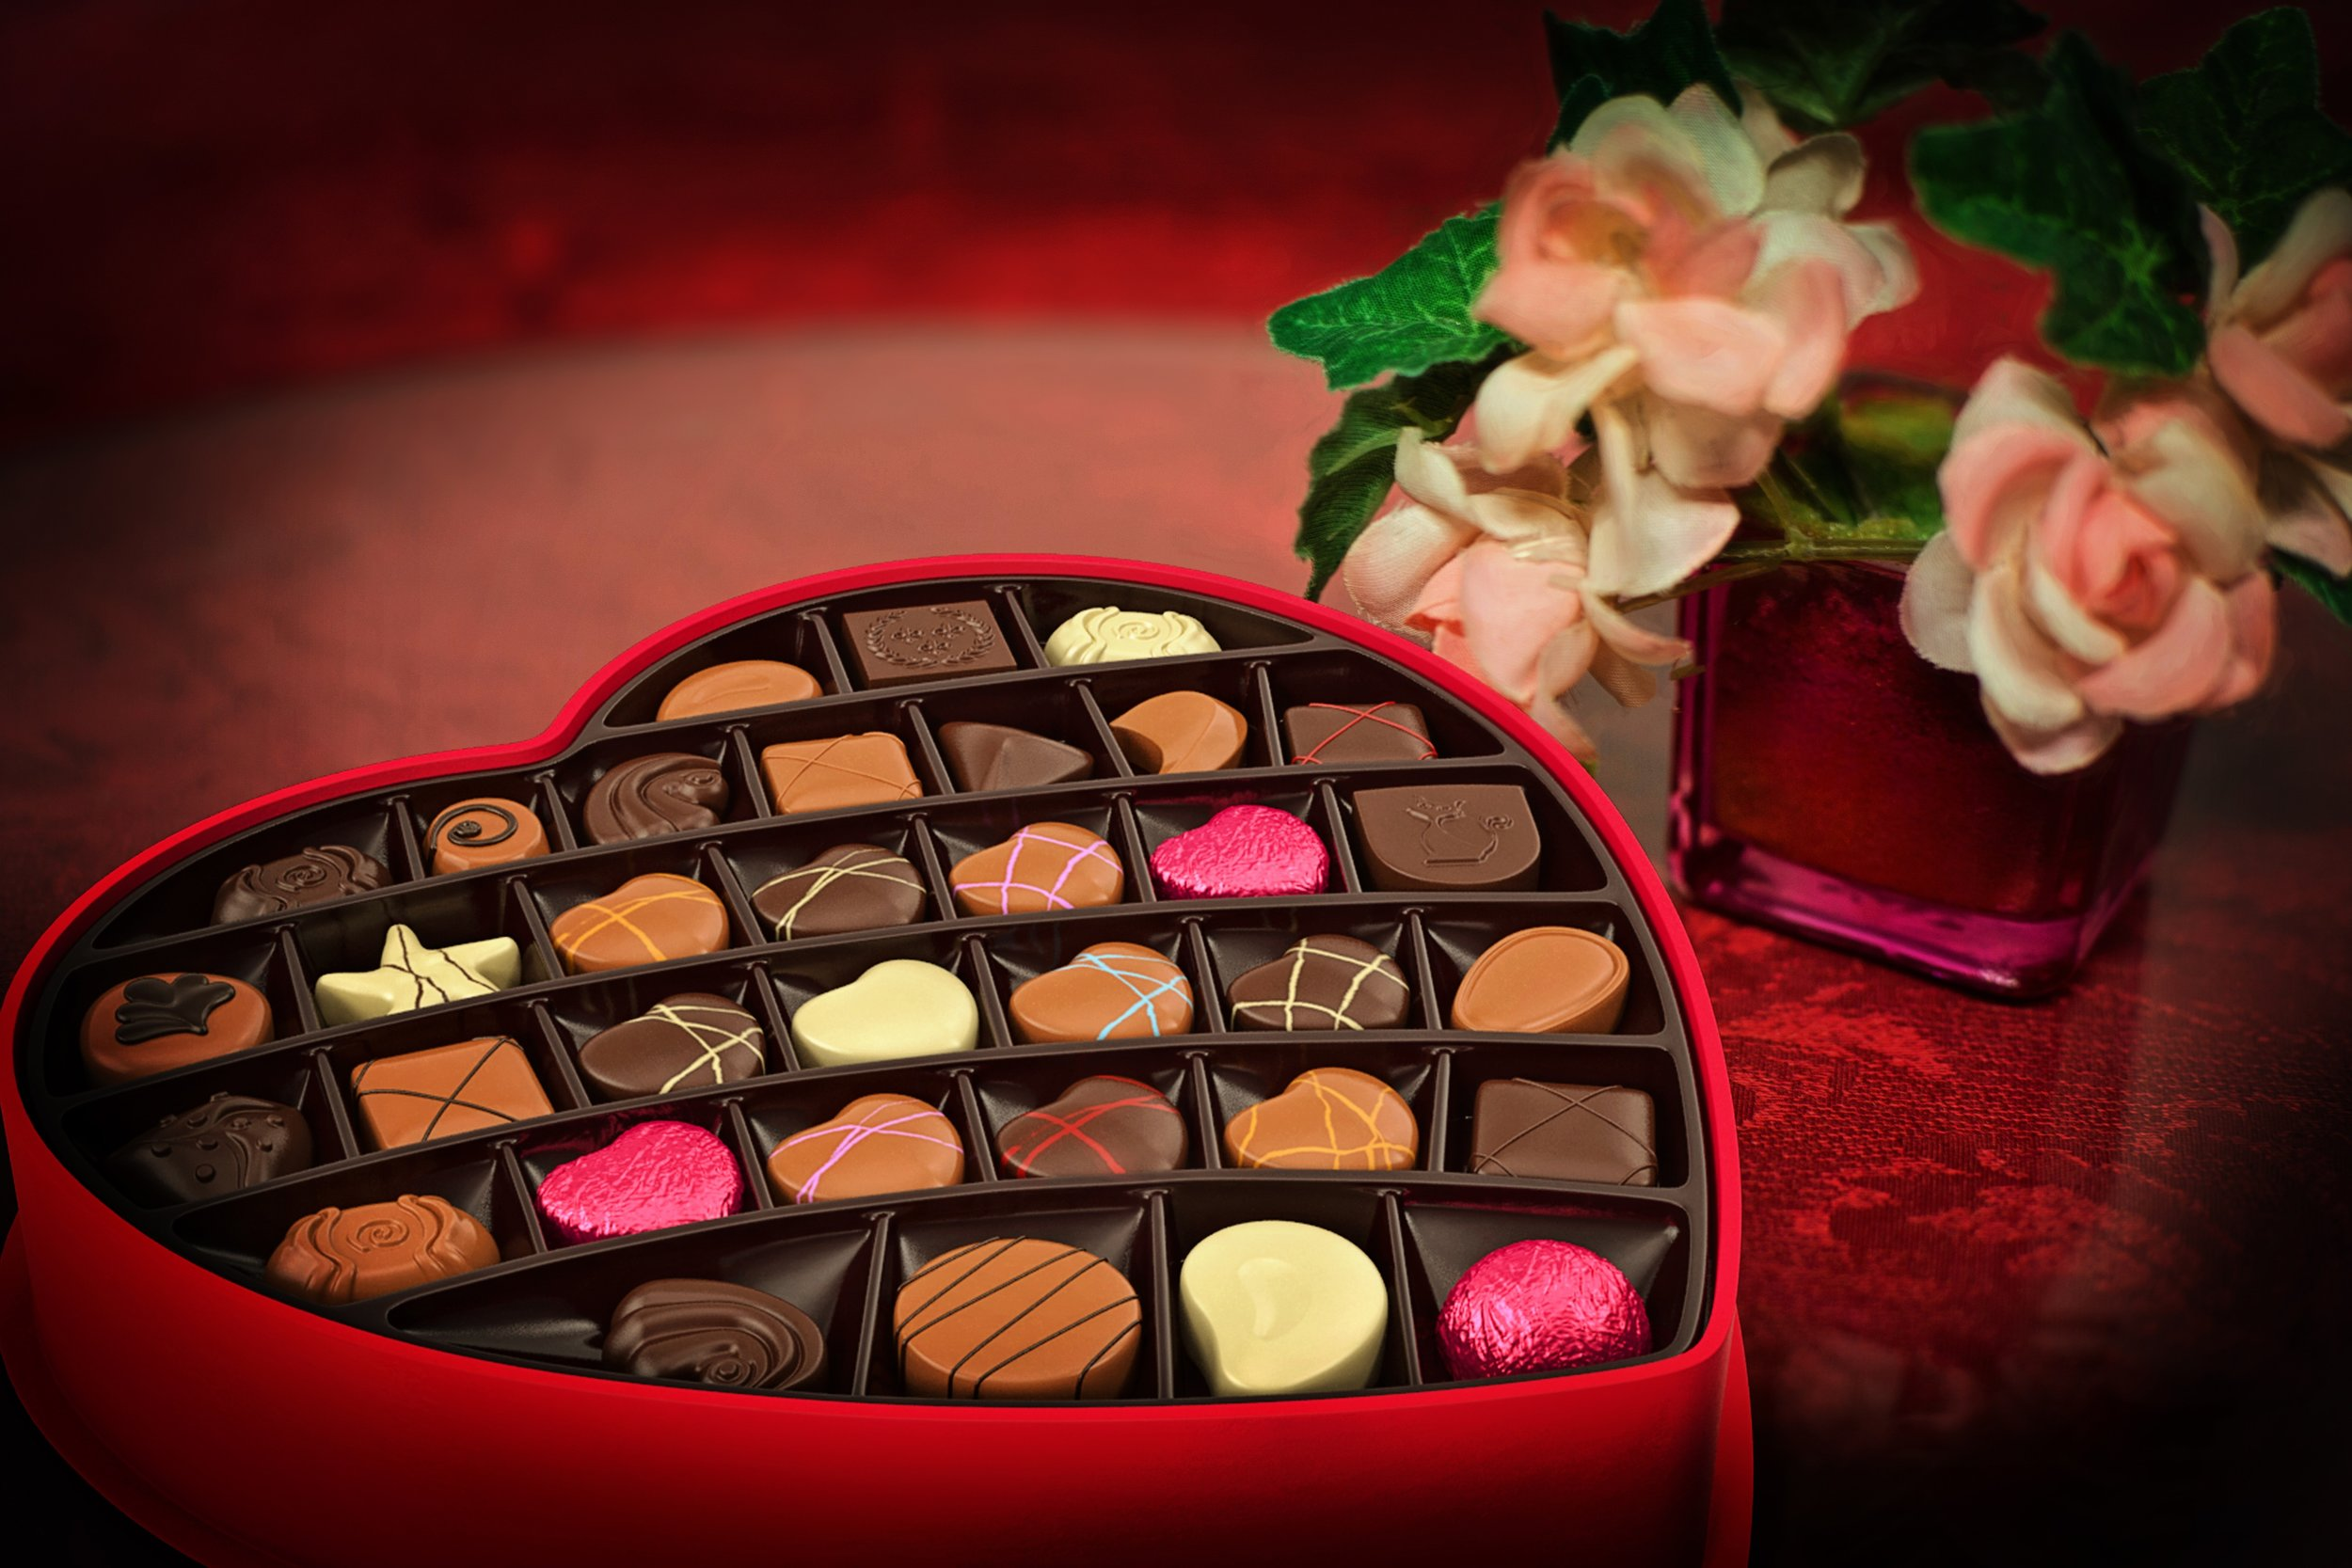 box-celebration-chocolates-356365.jpg